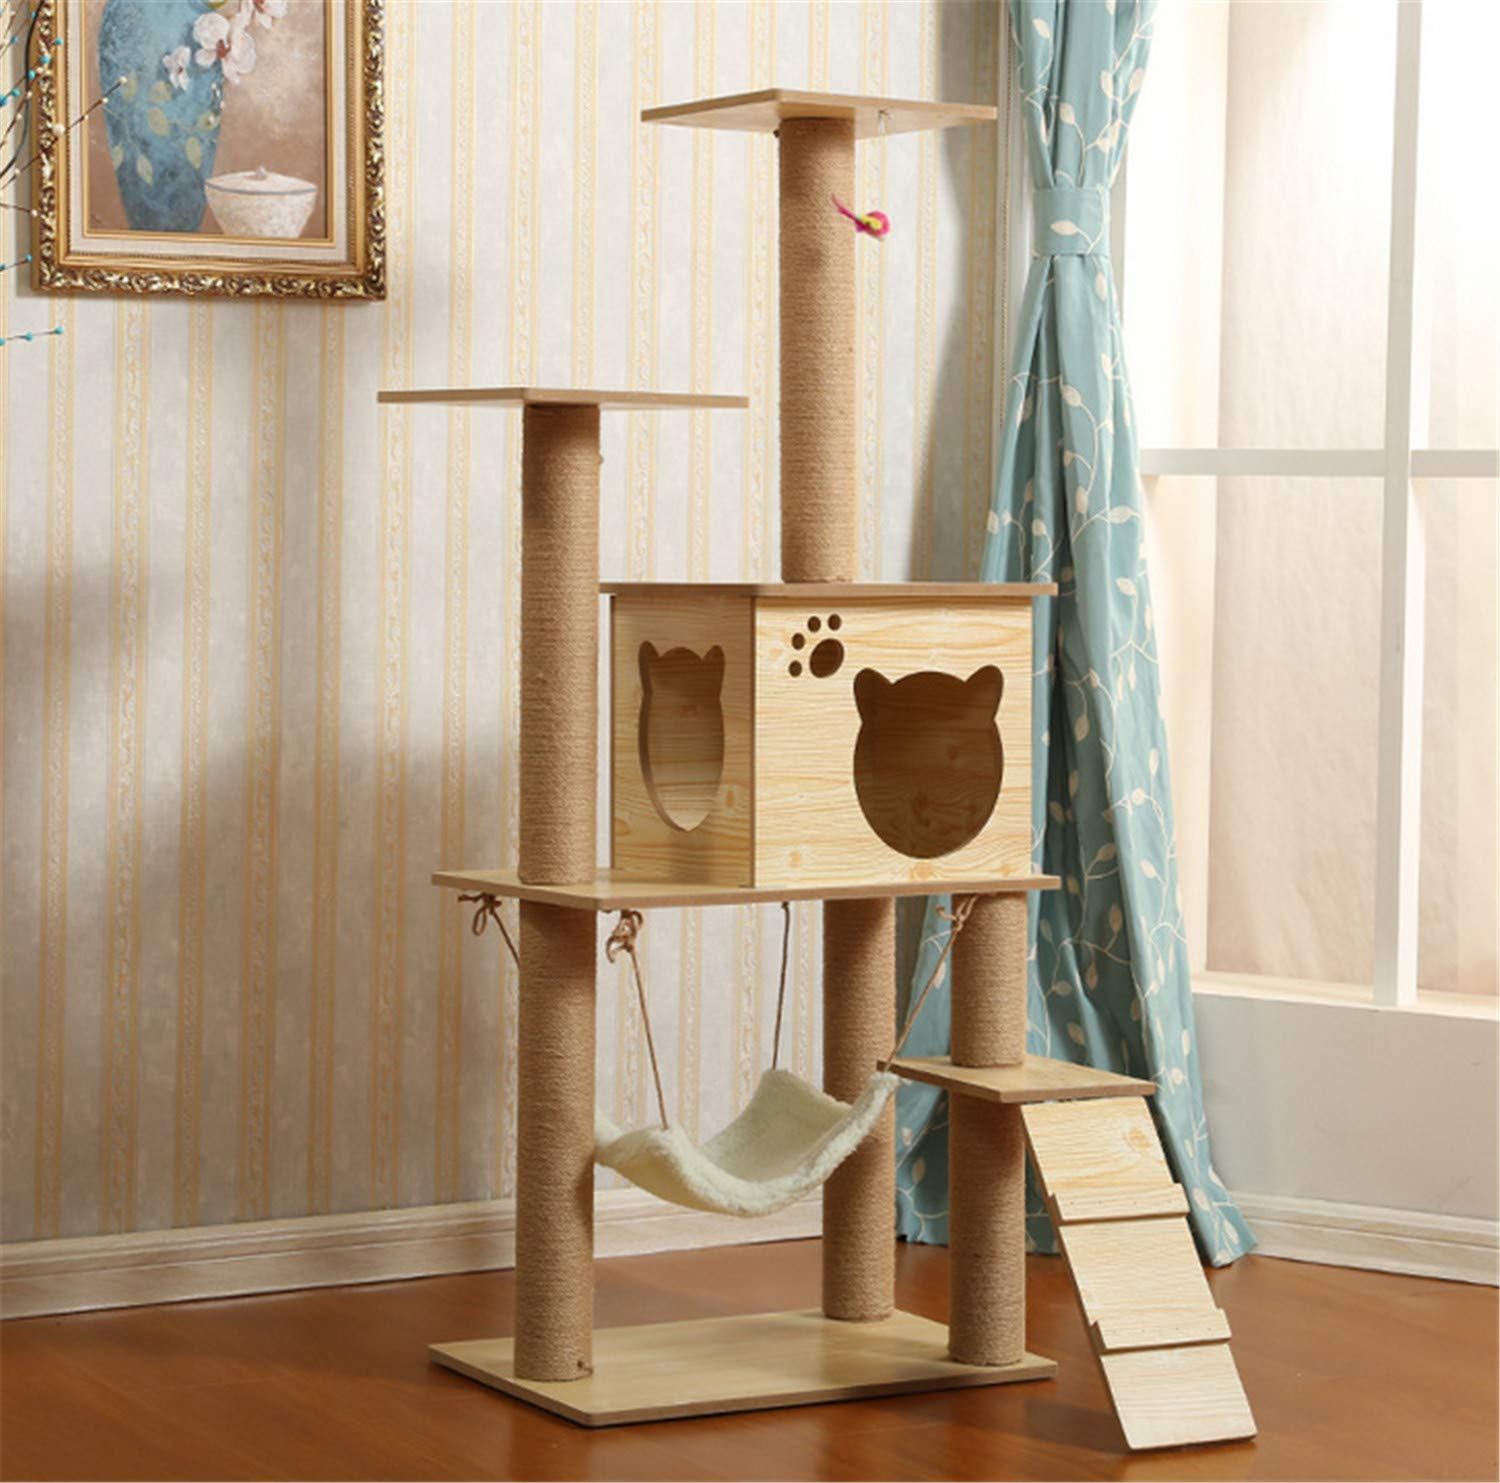 B UNIQUE-F Large Cat Tree And Grab Column Activity Center 135 Cm   3 Platforms   2 Caves Selected Wood Securely 2 Styles